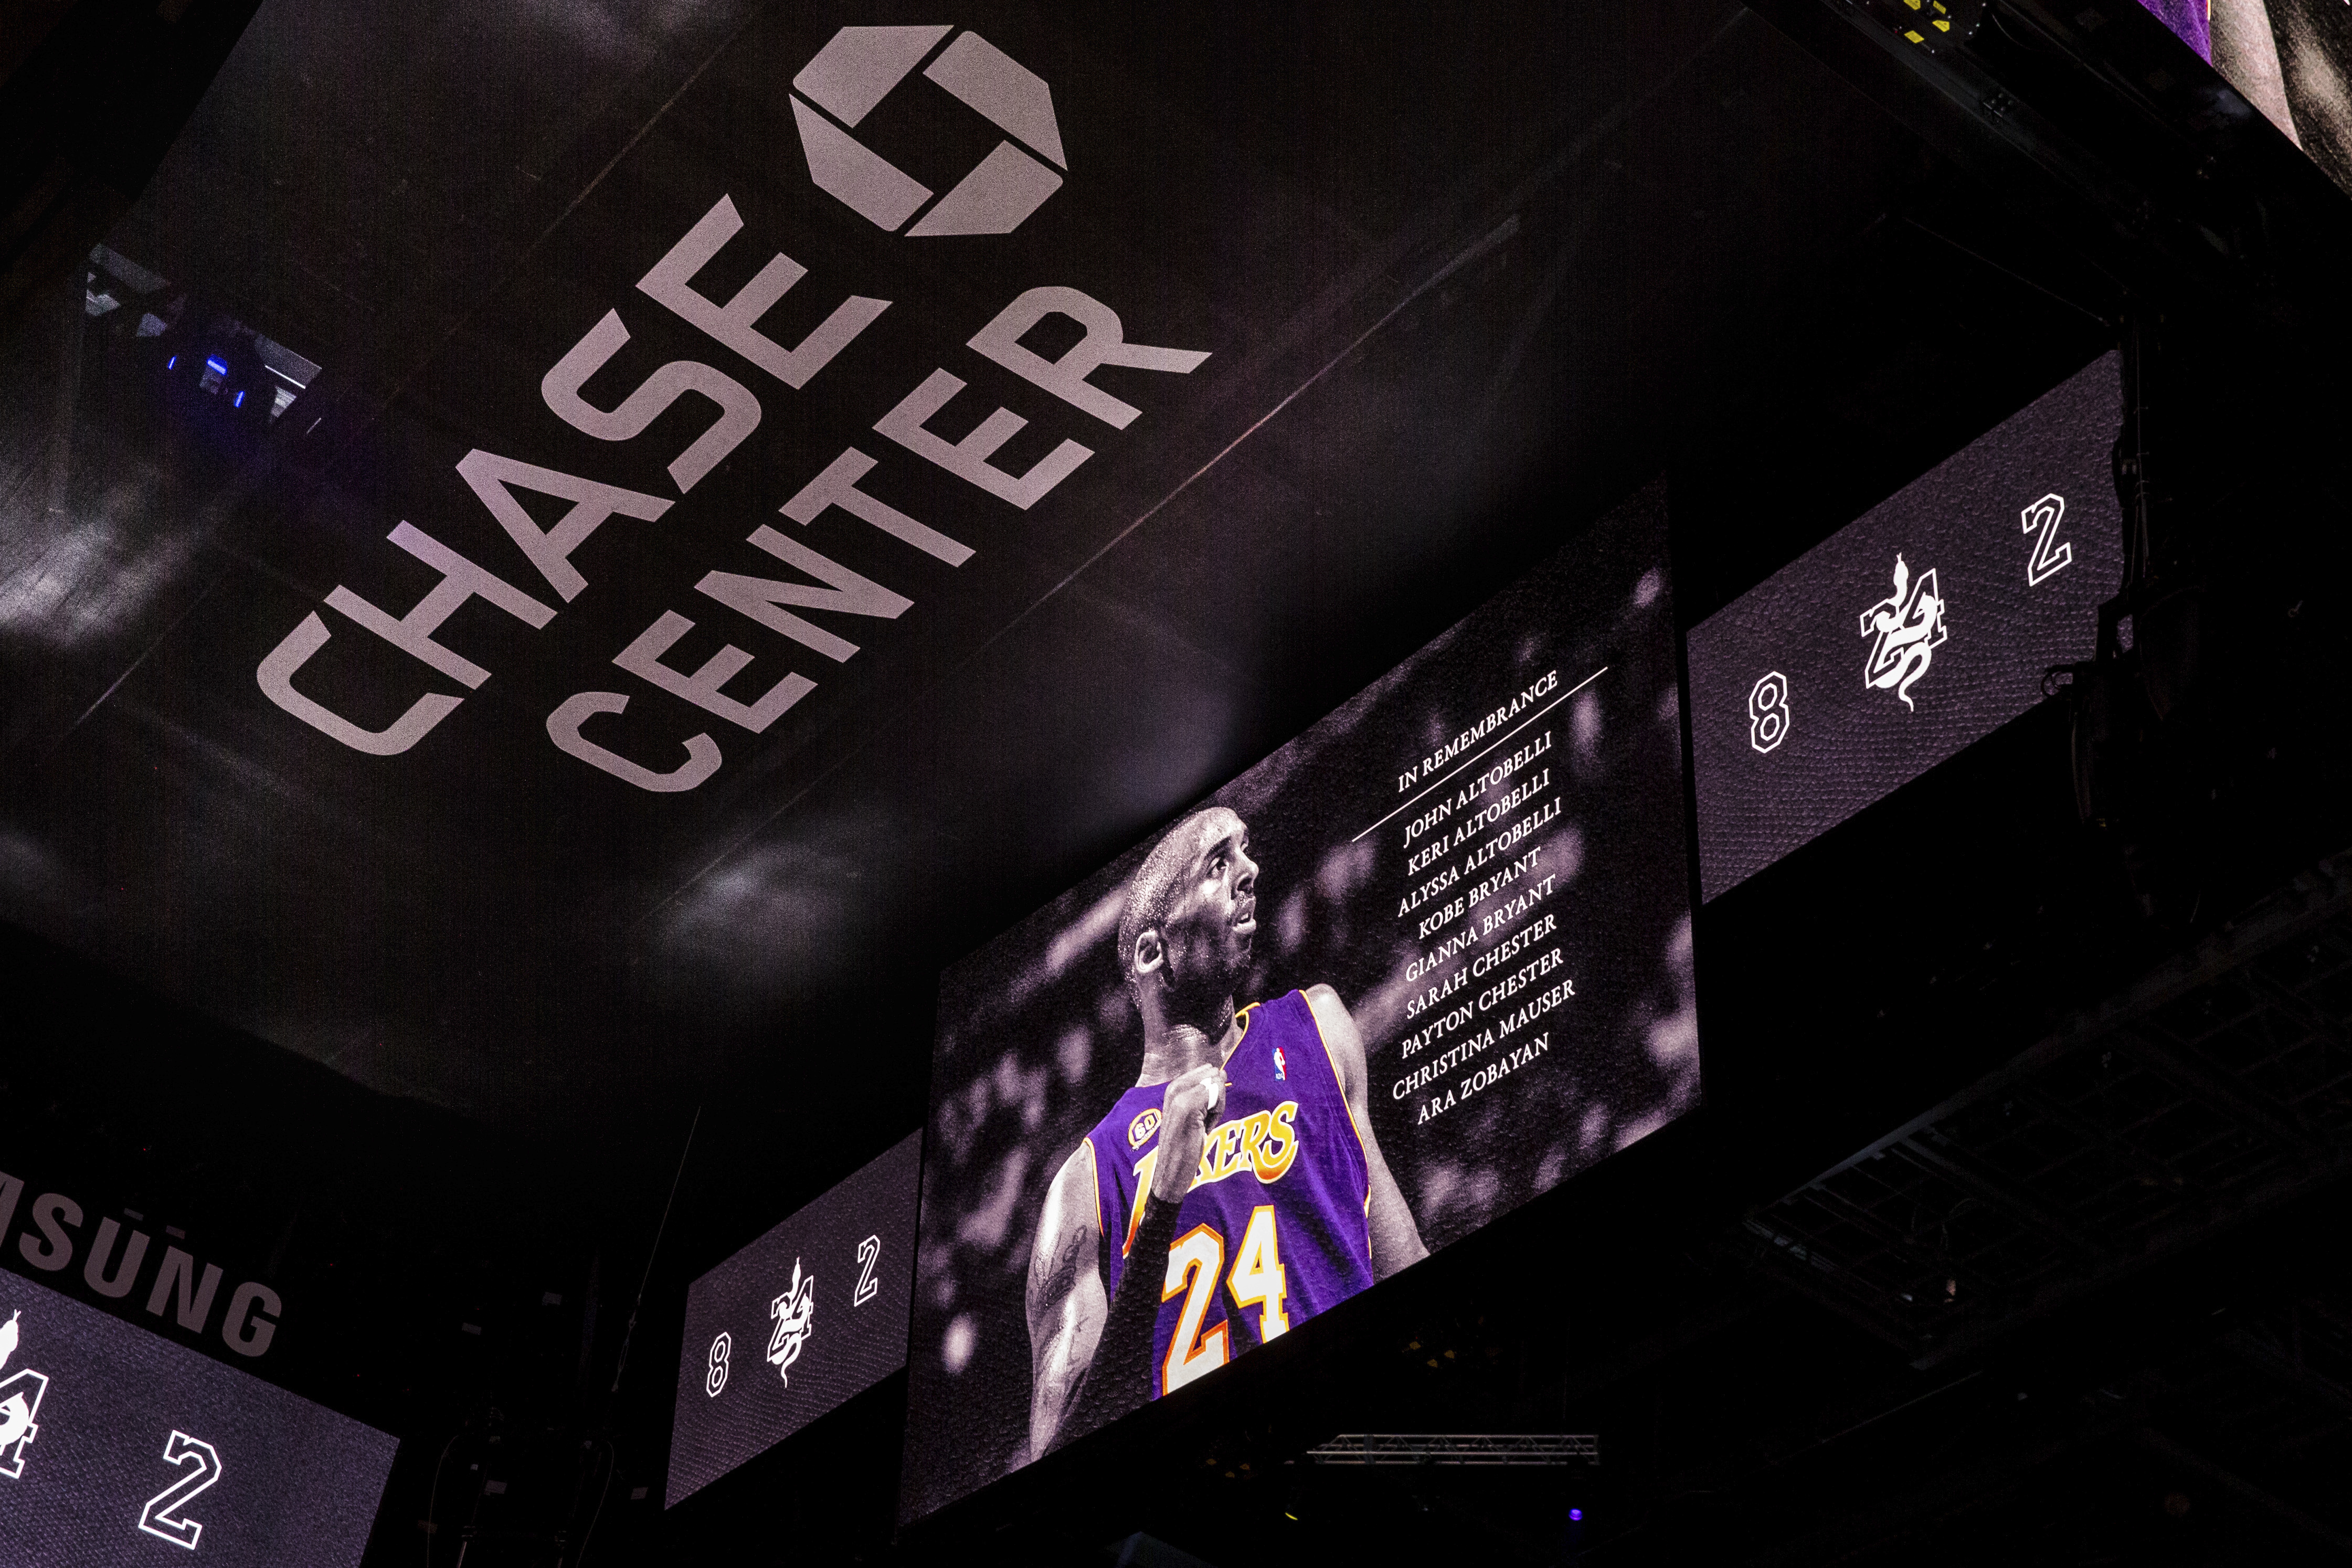 A memorial is presented for former Lakers player Kobe Bryant before an NBA basketball game between the Golden State Warriors and the Los Angeles Lakers in San Francisco Saturday, Feb. 8, 2020. The Lakers won 125-120.